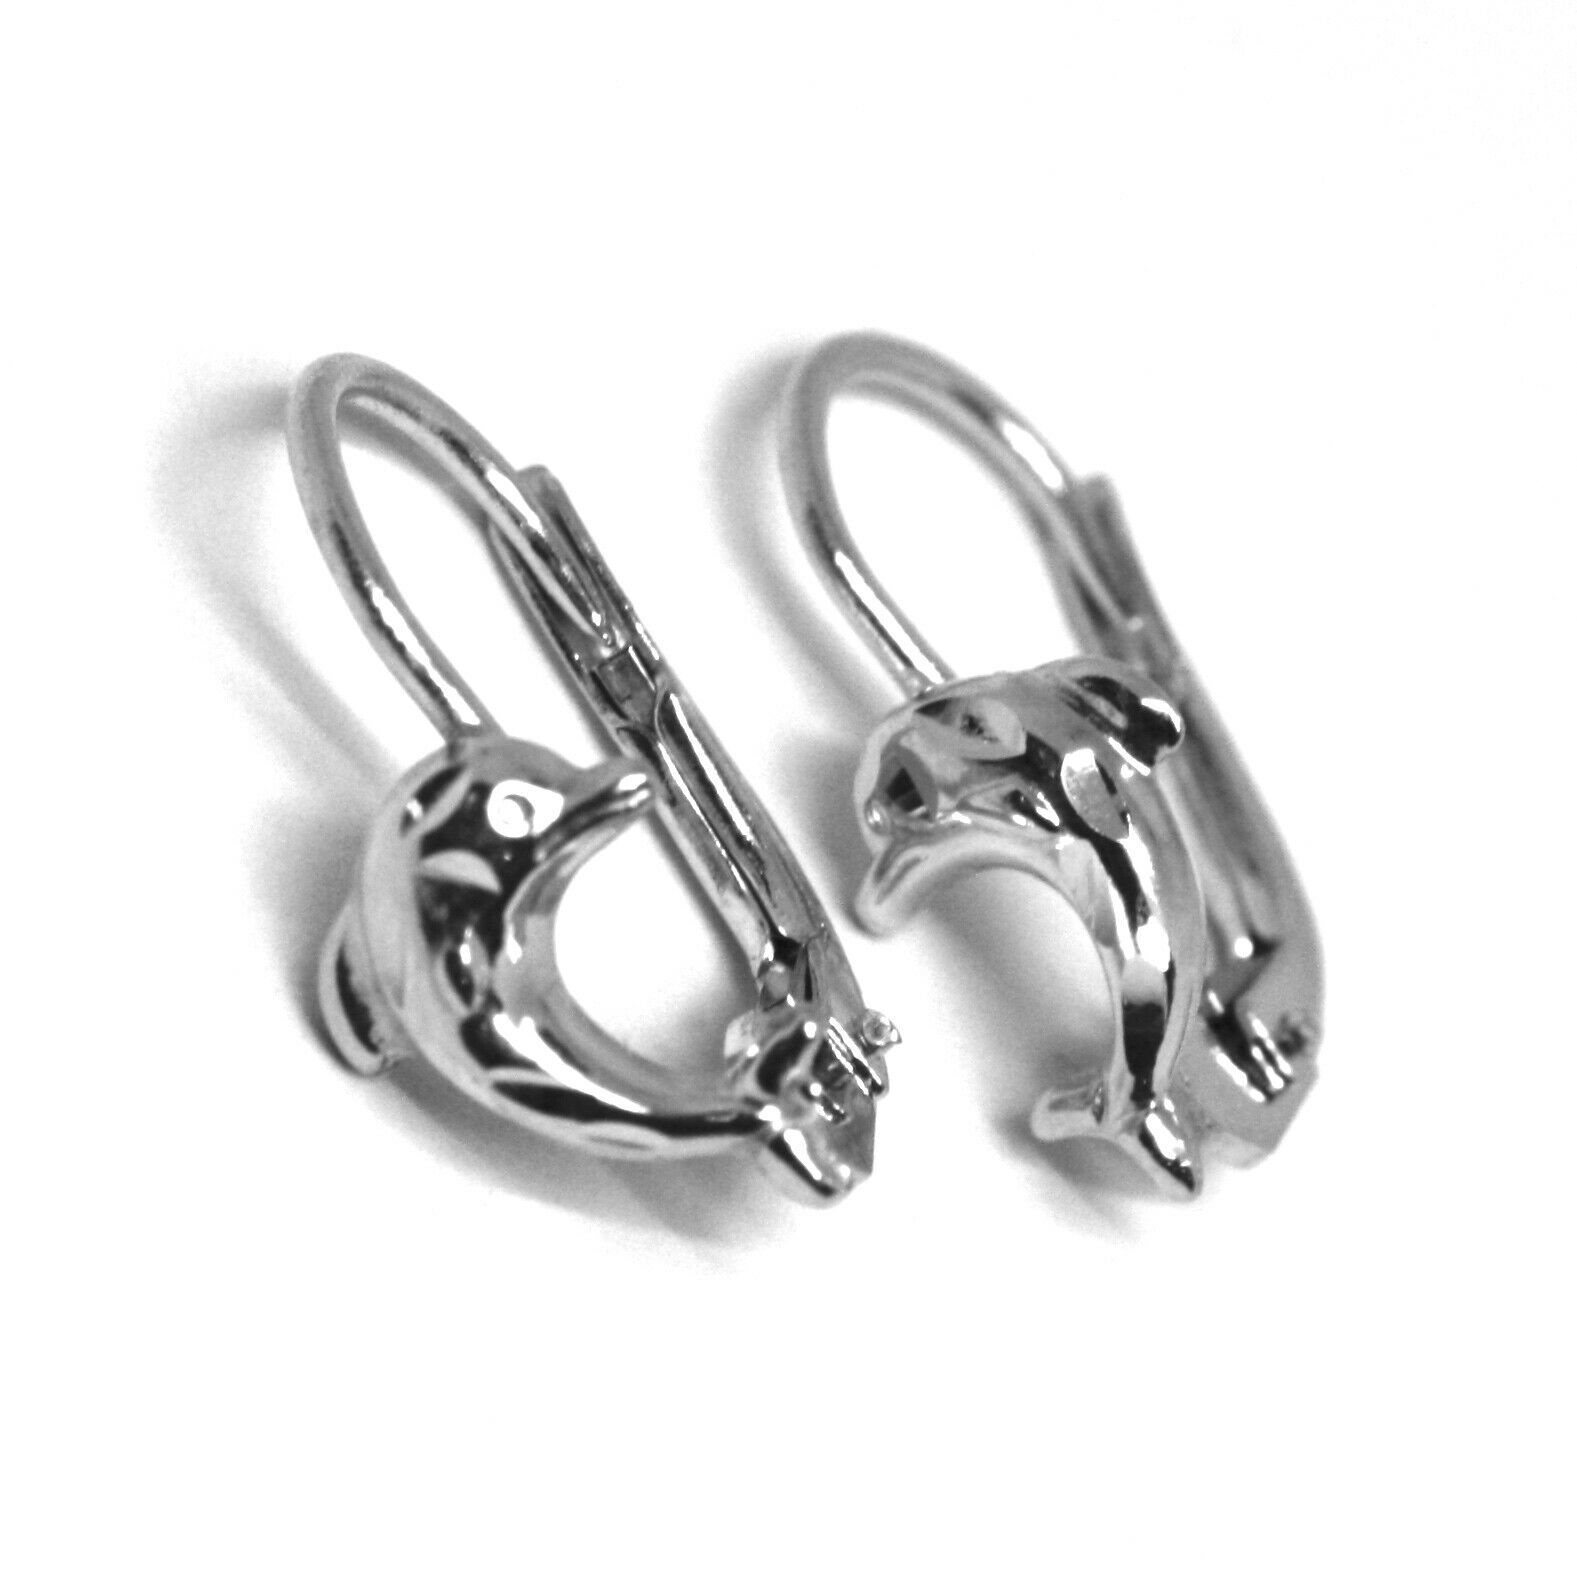 18K WHITE GOLD KIDS EARRINGS, HAMMERED DOLPHIN, LEVERBACK CLOSURE, ITALY MADE